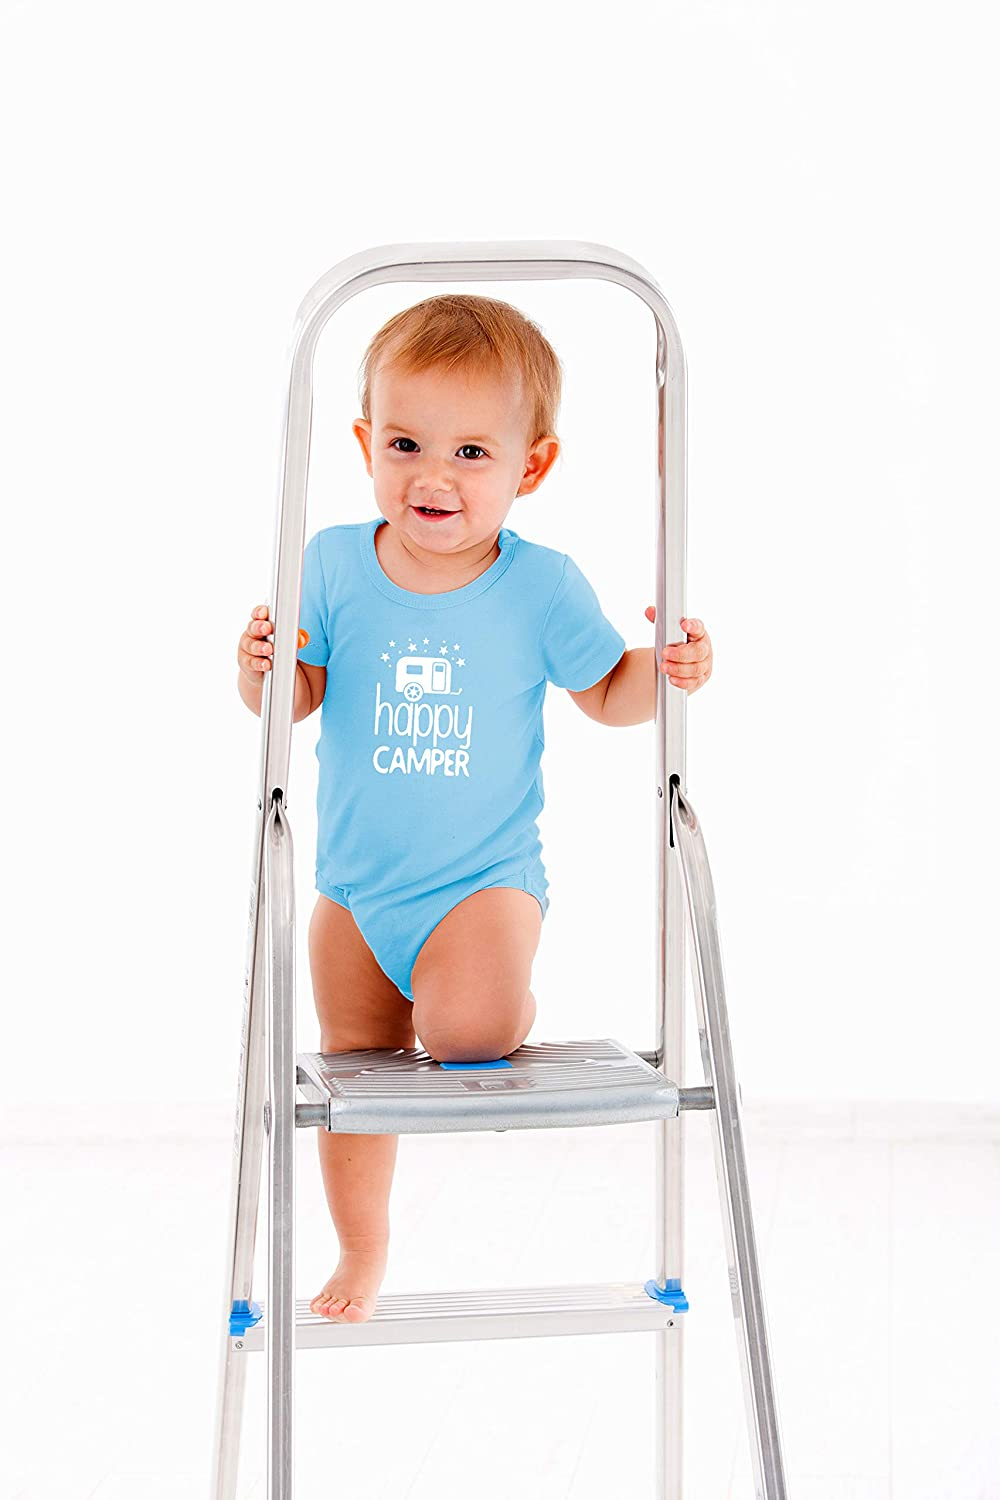 Cute One-Piece Infant Baby Bodysuit Id Rather Be Camping with My Family Happy Camper